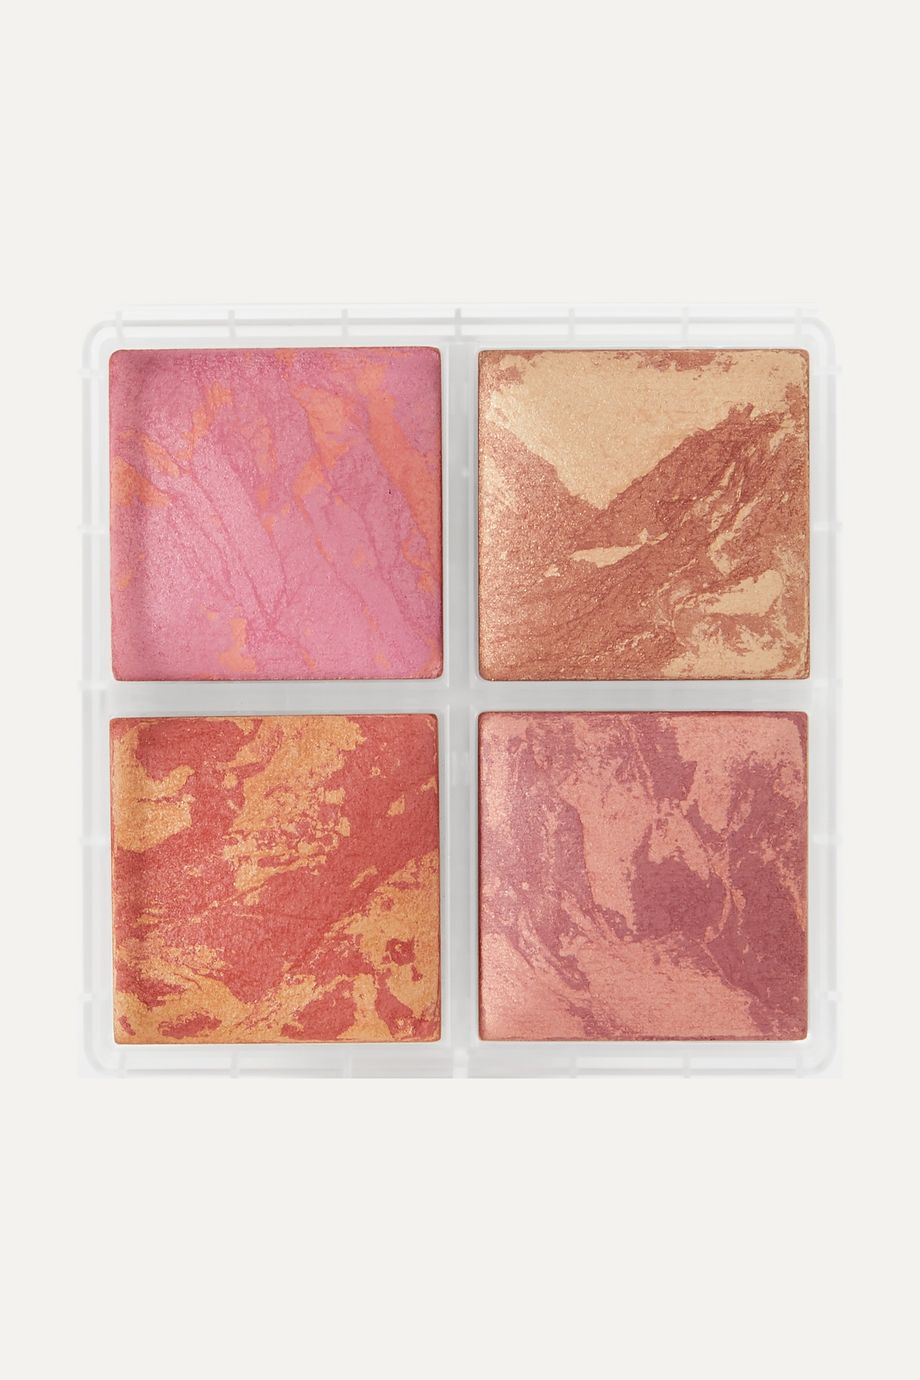 Hourglass Ambient Lighting Blush Quad - Ghost